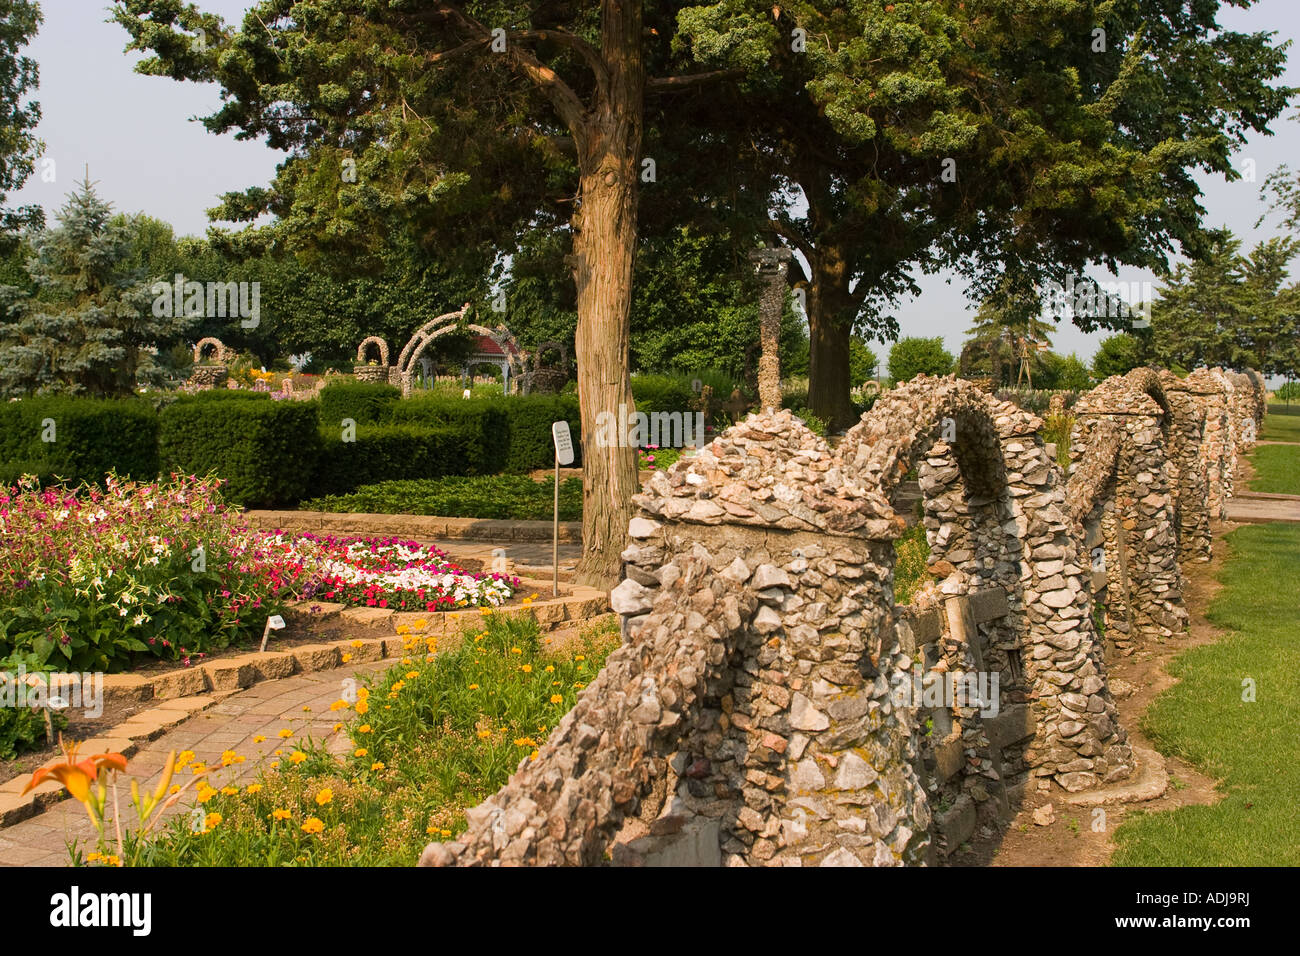 Awesome ILLINOIS Arcola Rock Structures And Flowers At Rockome Gardens